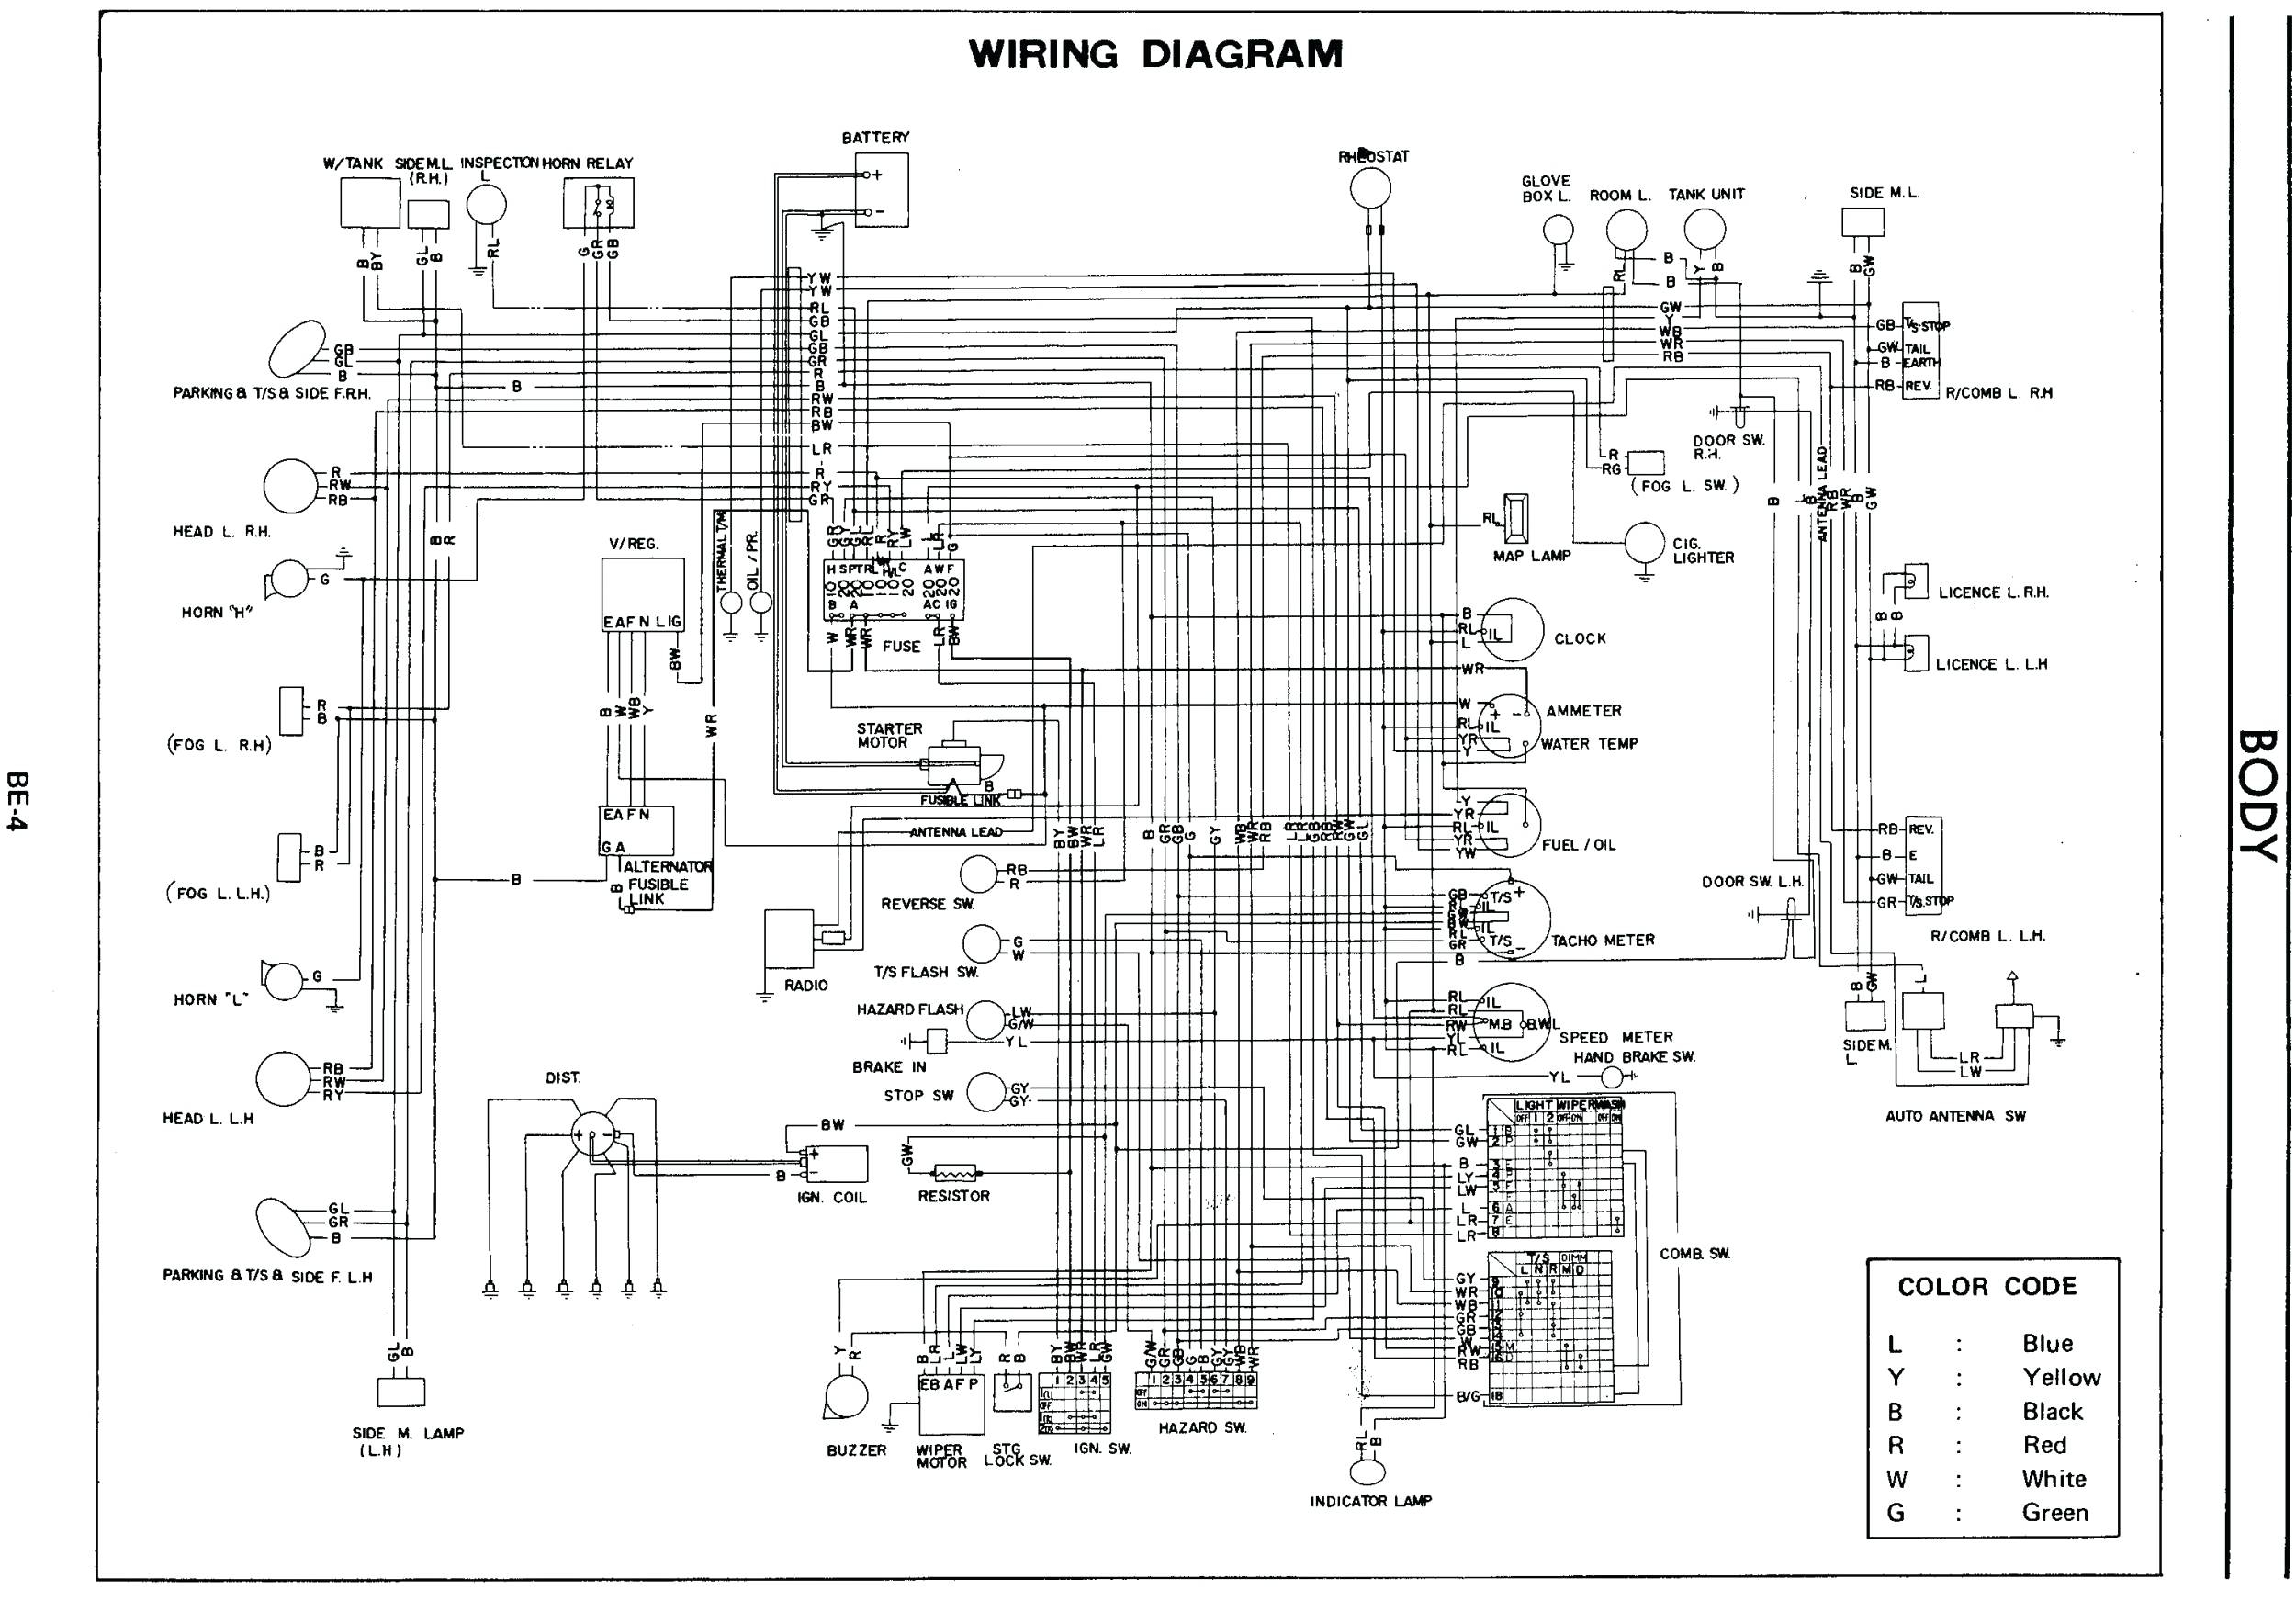 mini cooper ecu wiring diagram mini cooper 2004 wiring diagram collection of 2003 mini cooper wiring diagram download